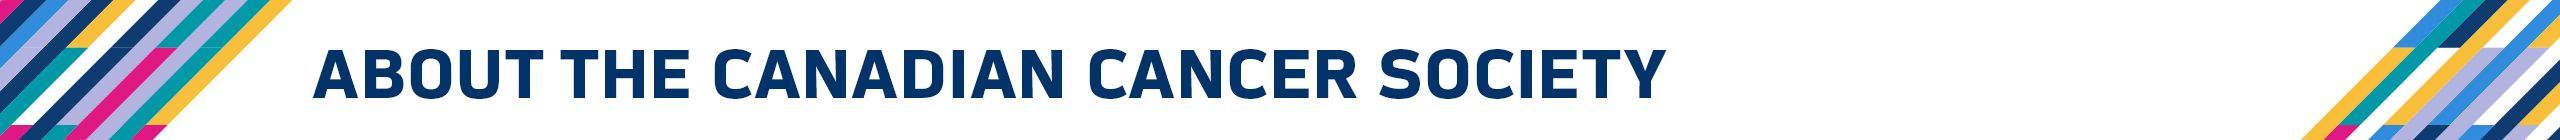 CrucialCatch_SectionHeader_About the Canadian Cancer Society